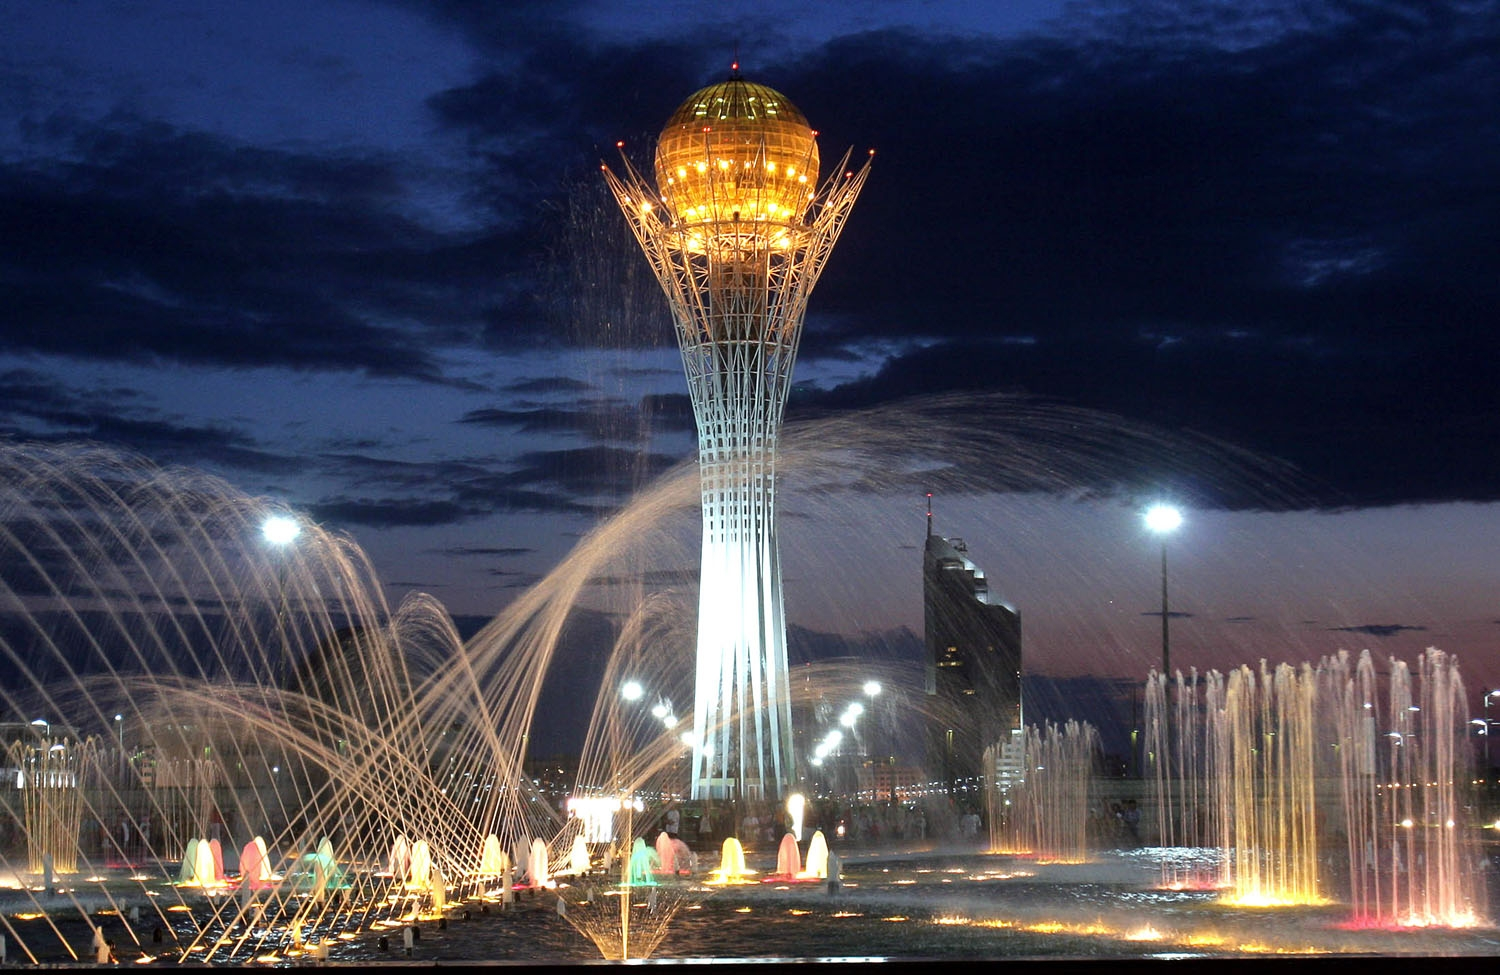 A picture taken 12 June 2005 shows the 97 metres (320 feet) steel tower in the center of Astana